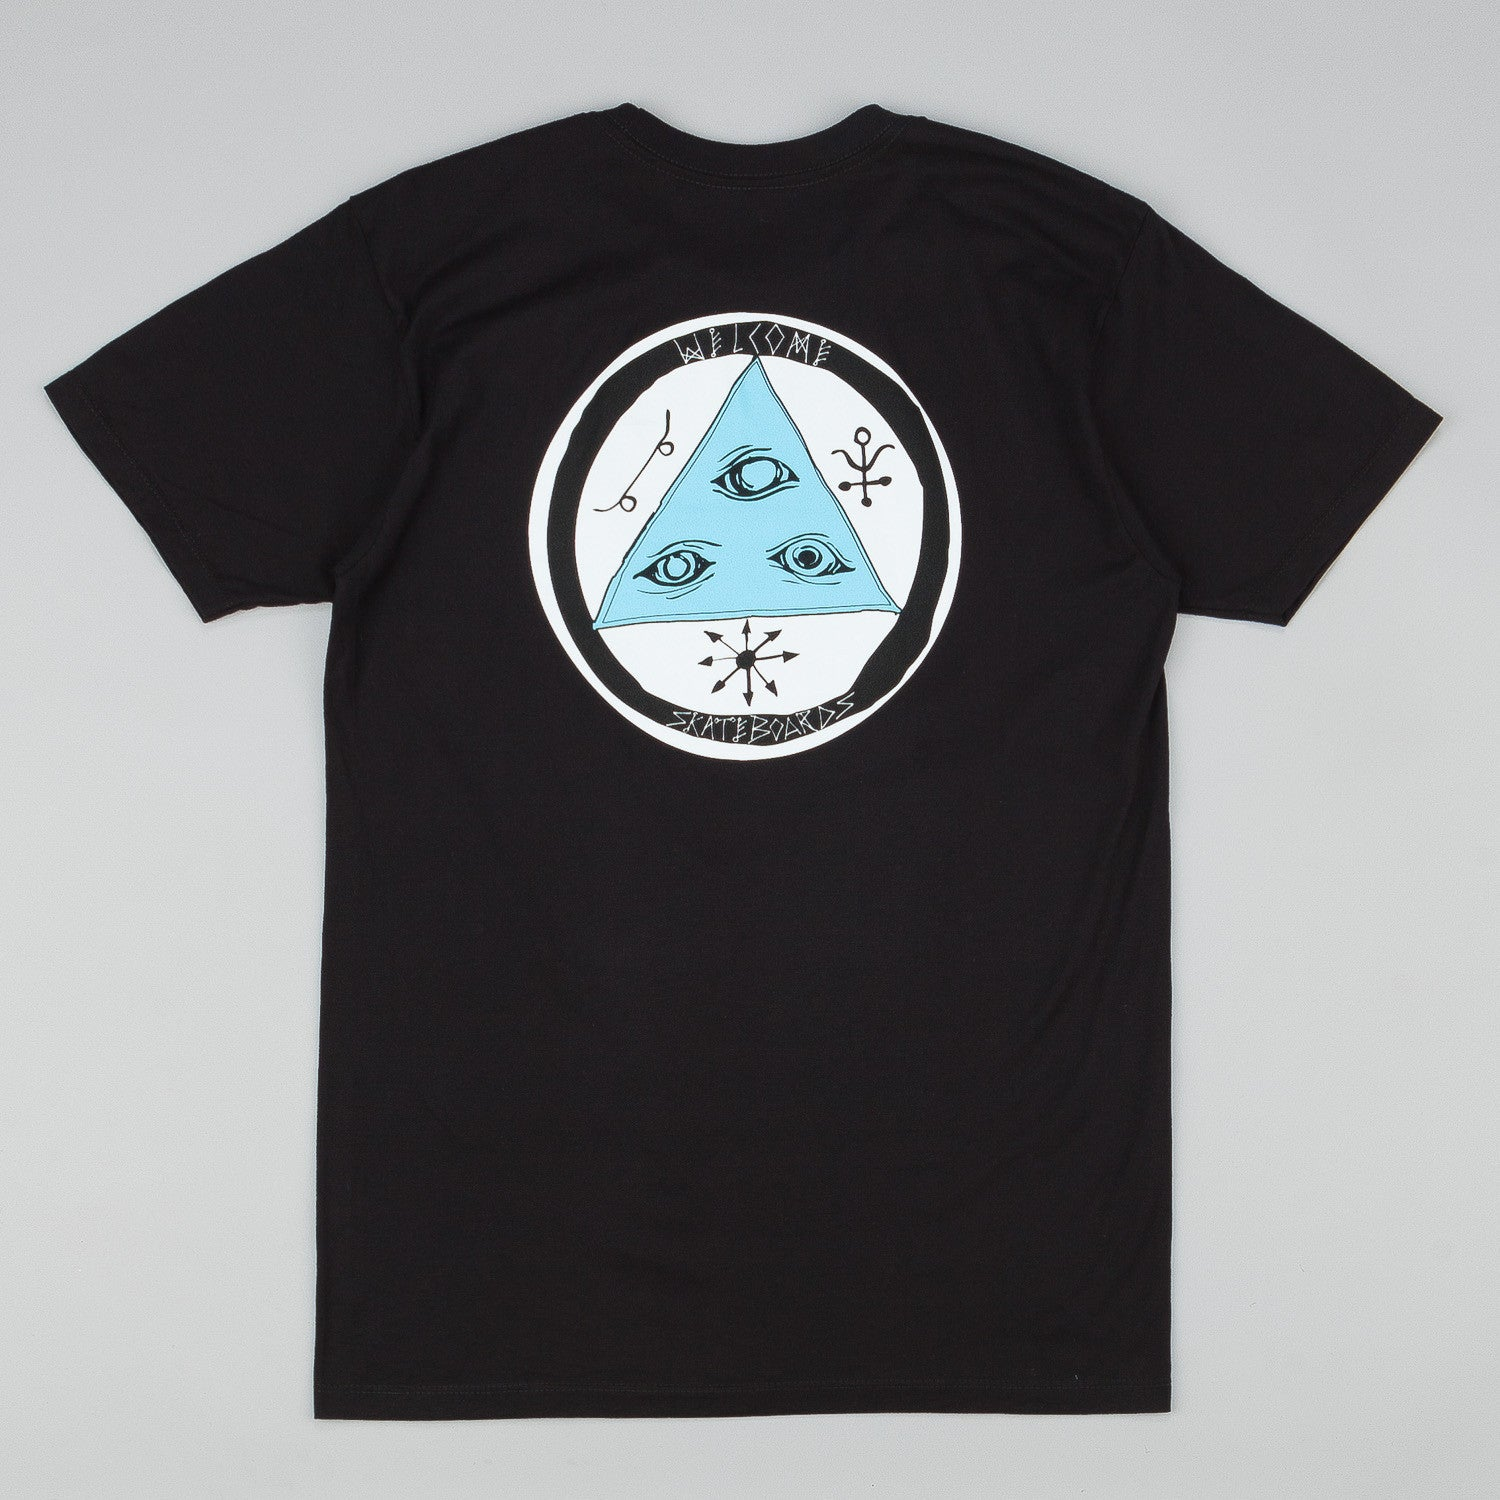 Welcome Talisman Tri-Colour T-Shirt - Black / Blue / White